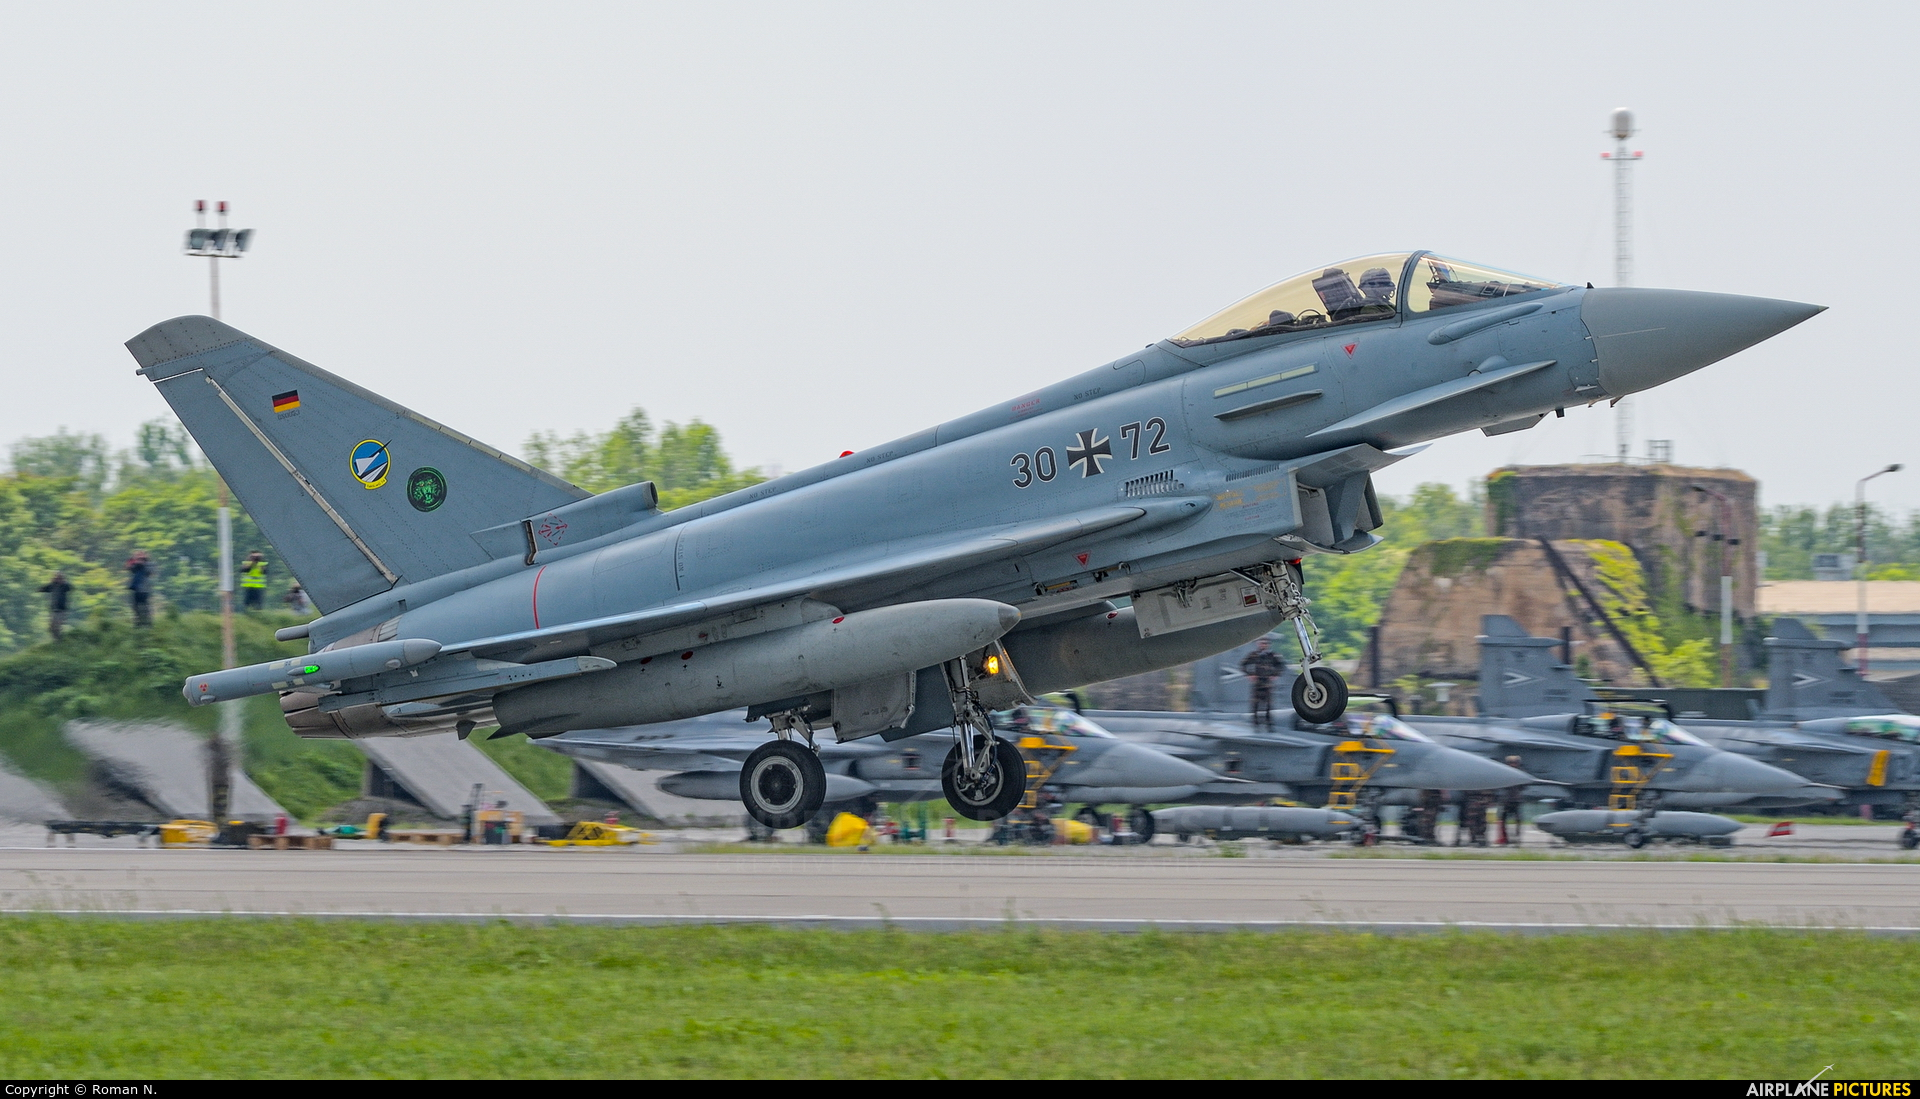 Germany - Air Force 30+72 aircraft at Poznań - Krzesiny